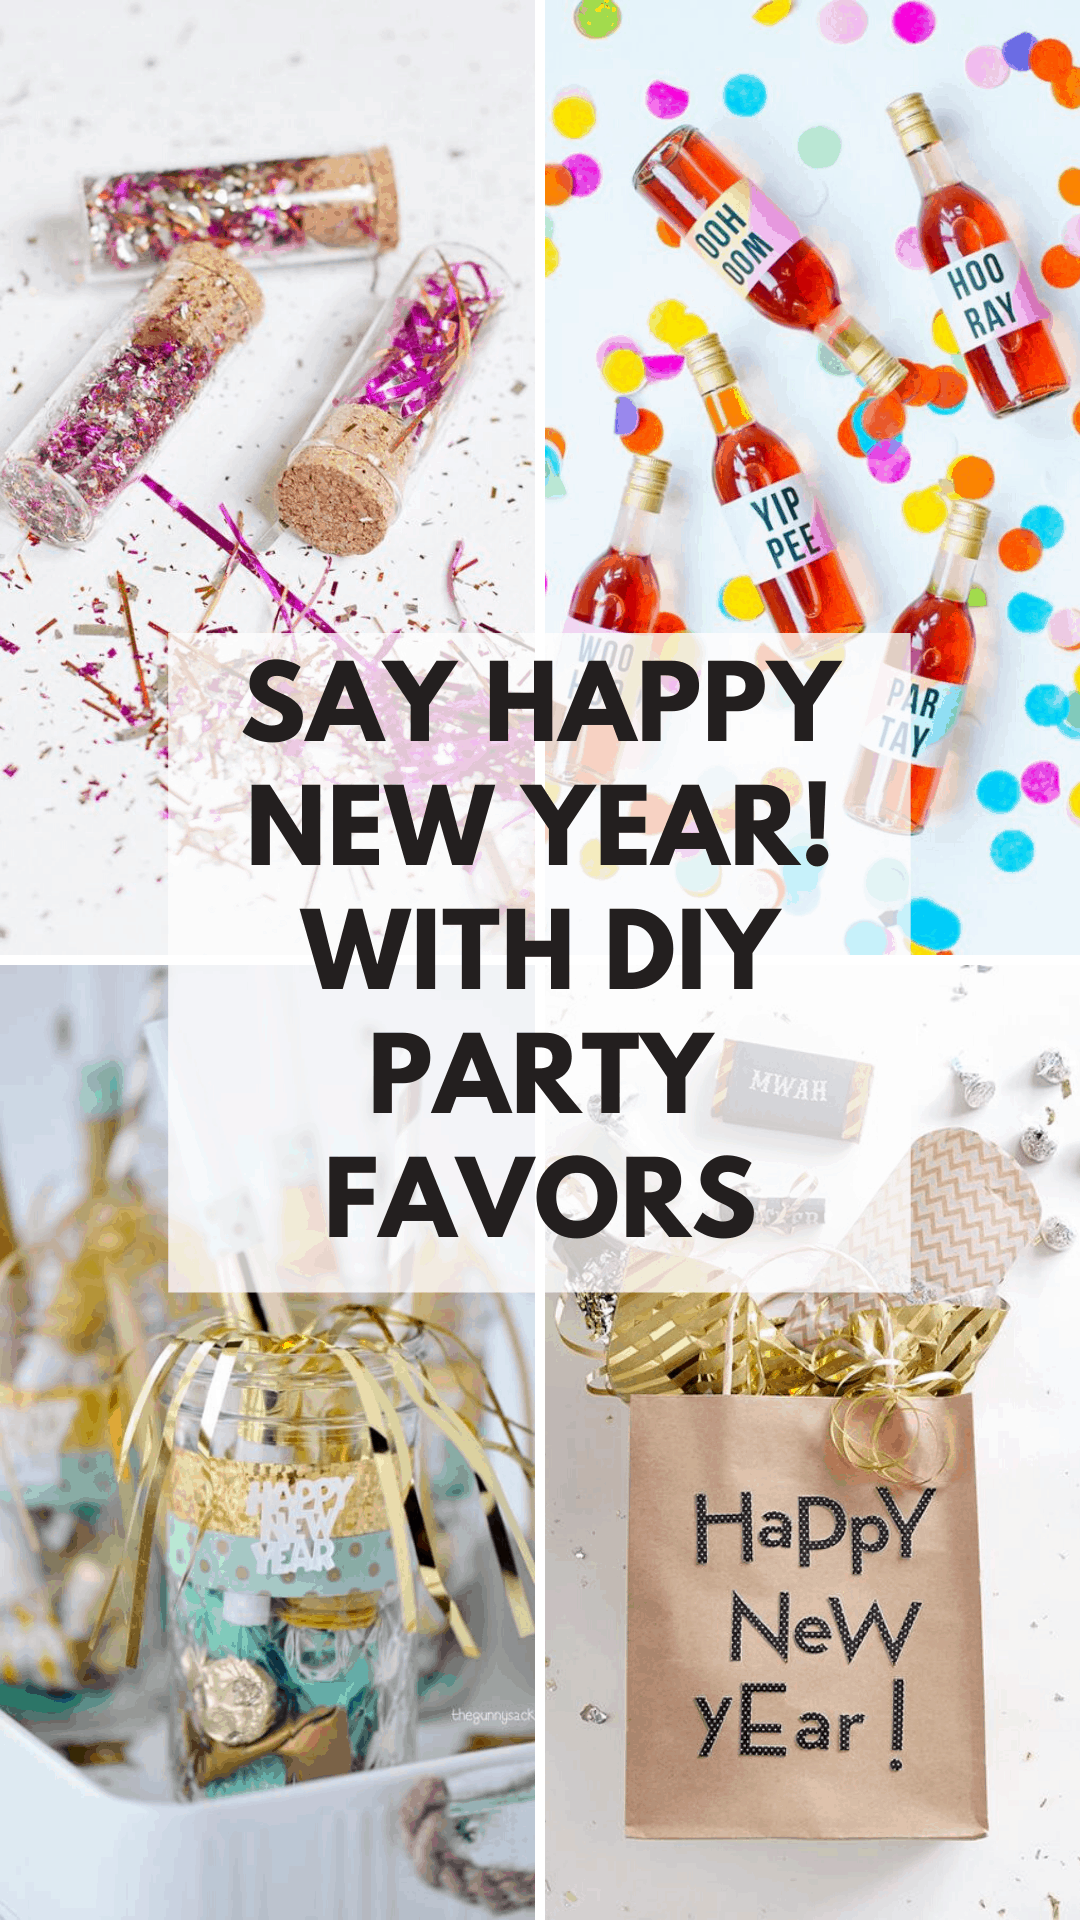 Help your guests ring in the new year in style with these fabulous party favors you can make this weekend!